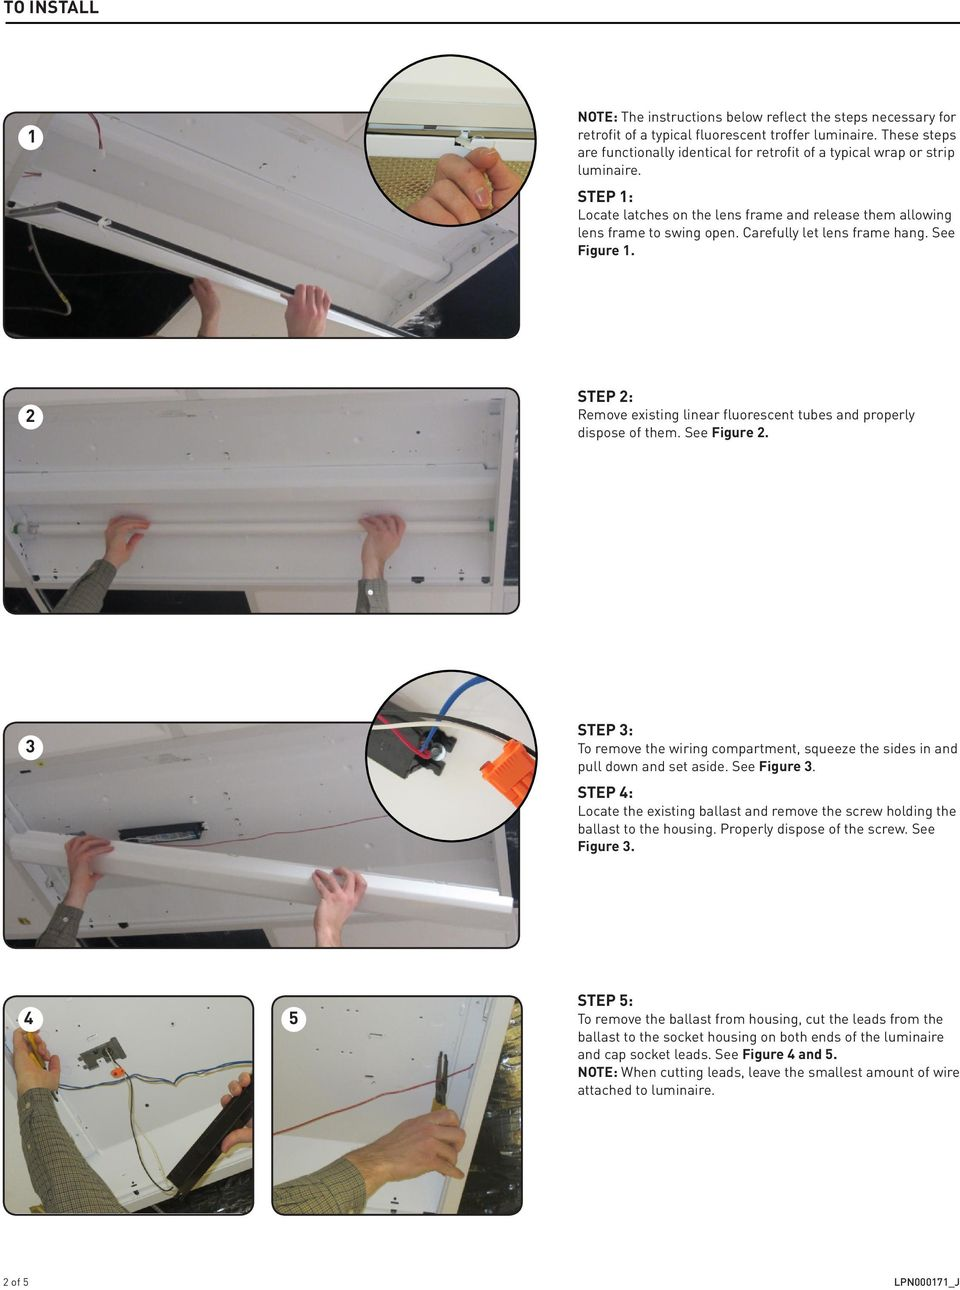 Carefully let lens frame hang. See Figure 1. 2 STEP 2: Remove existing linear fluorescent tubes and properly dispose of them. See Figure 2.